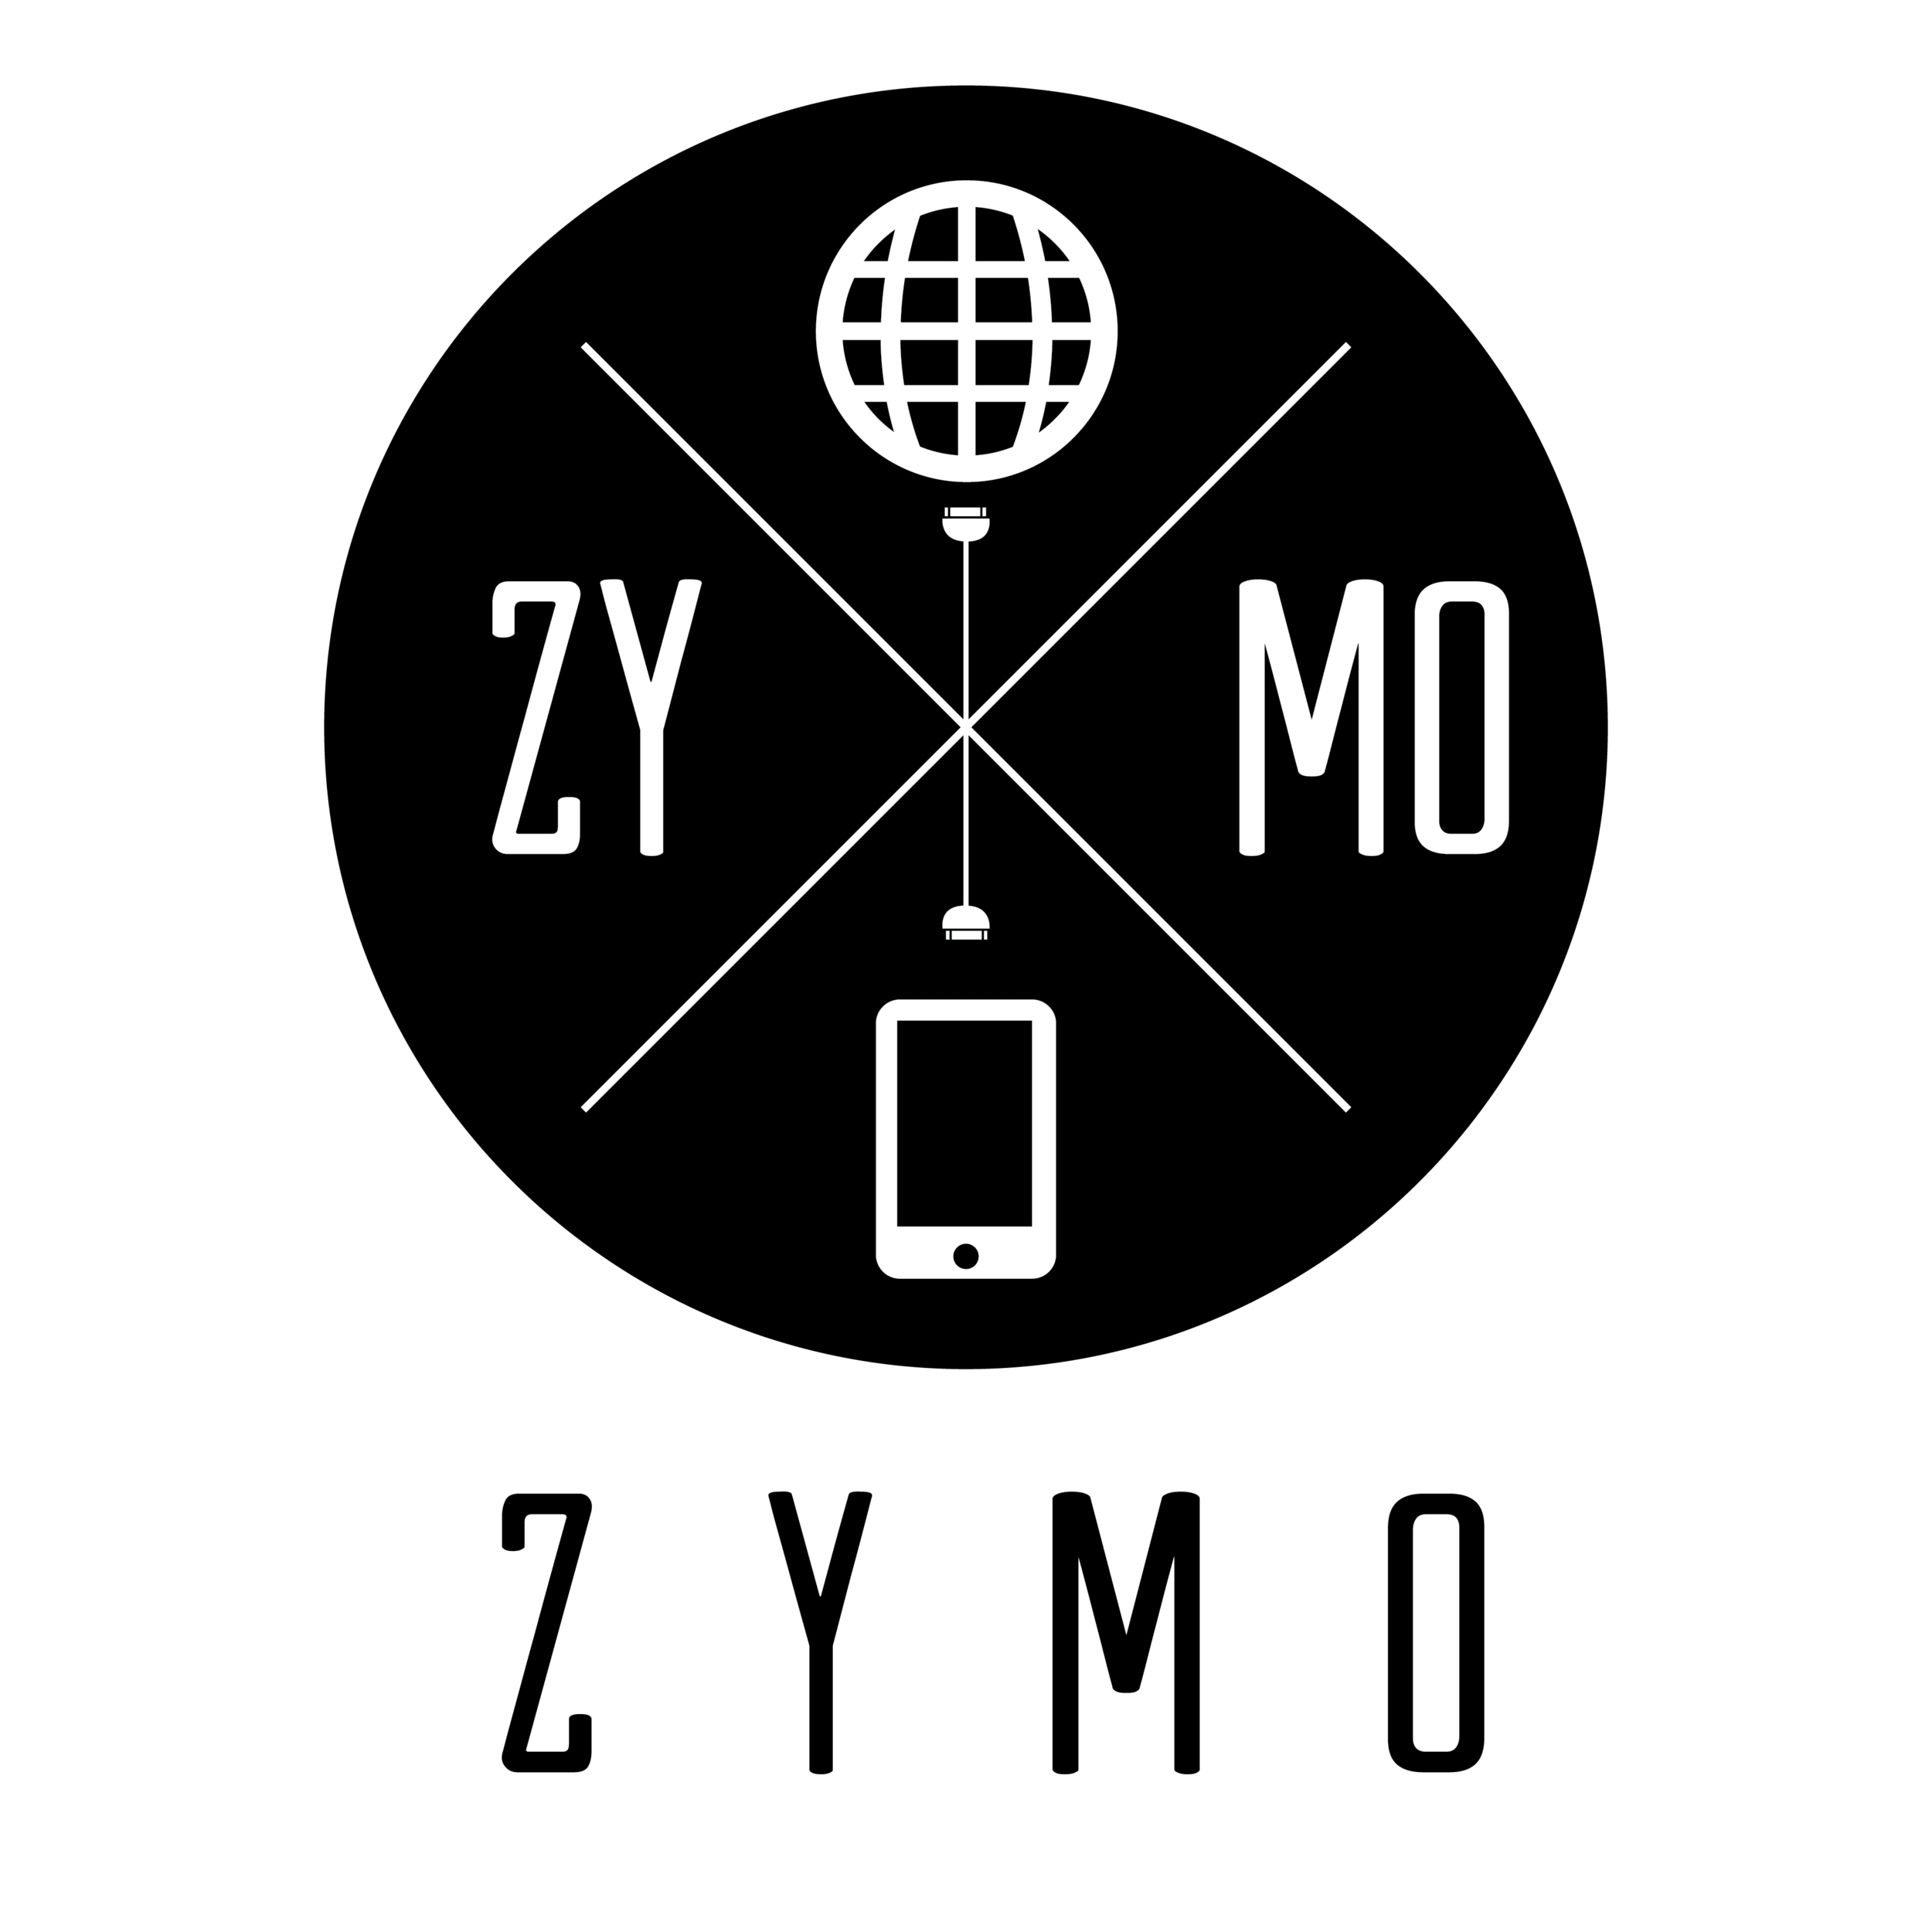 Zymo-01.png